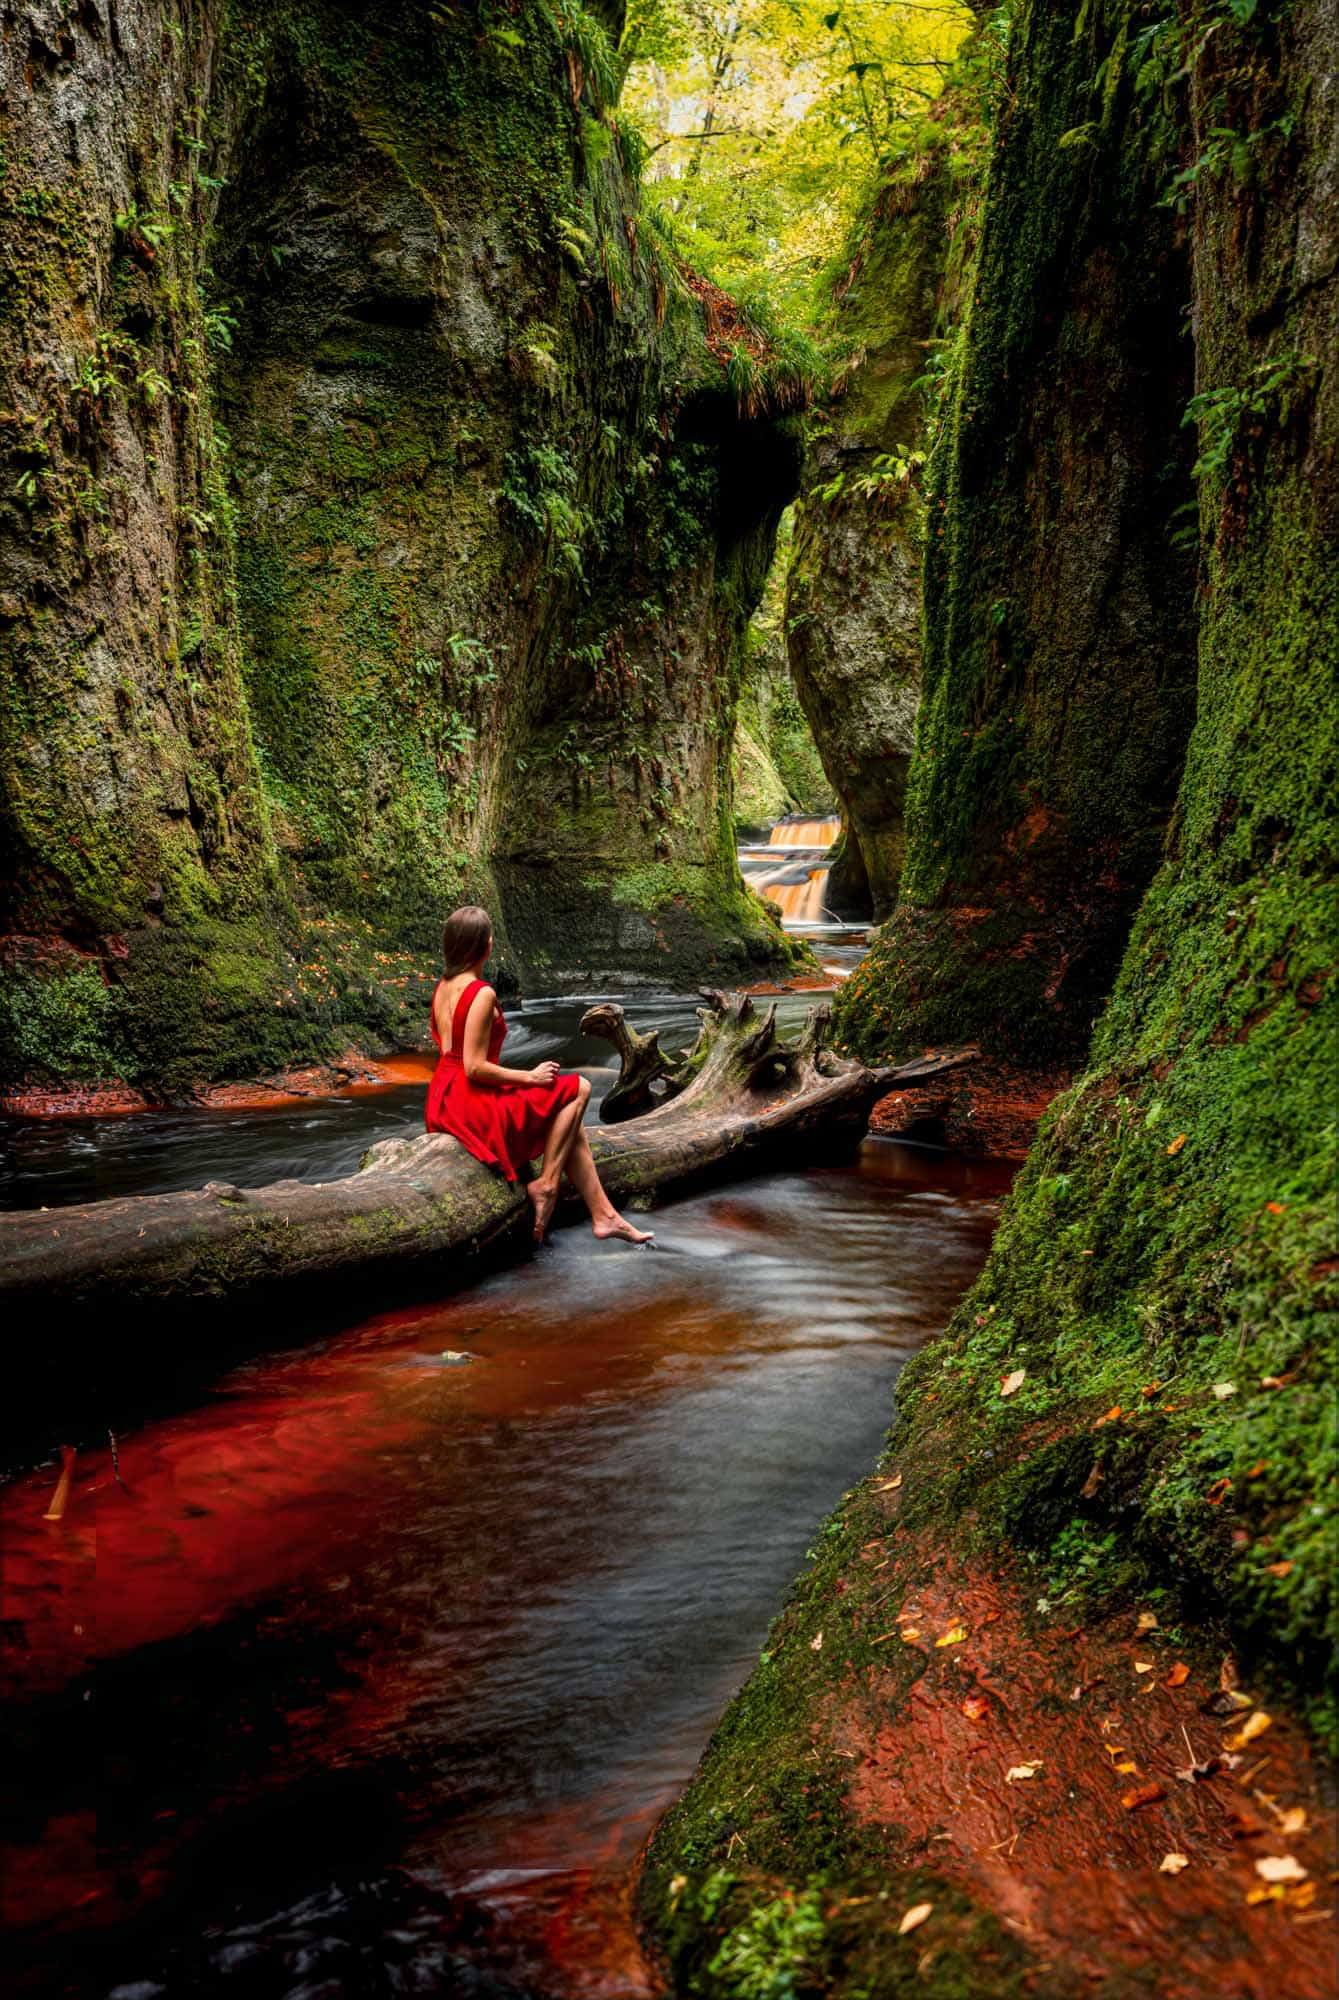 Pretending to be a fairy in the gorge at Finnich Glen on Day 2 of 10 days in Scotland.